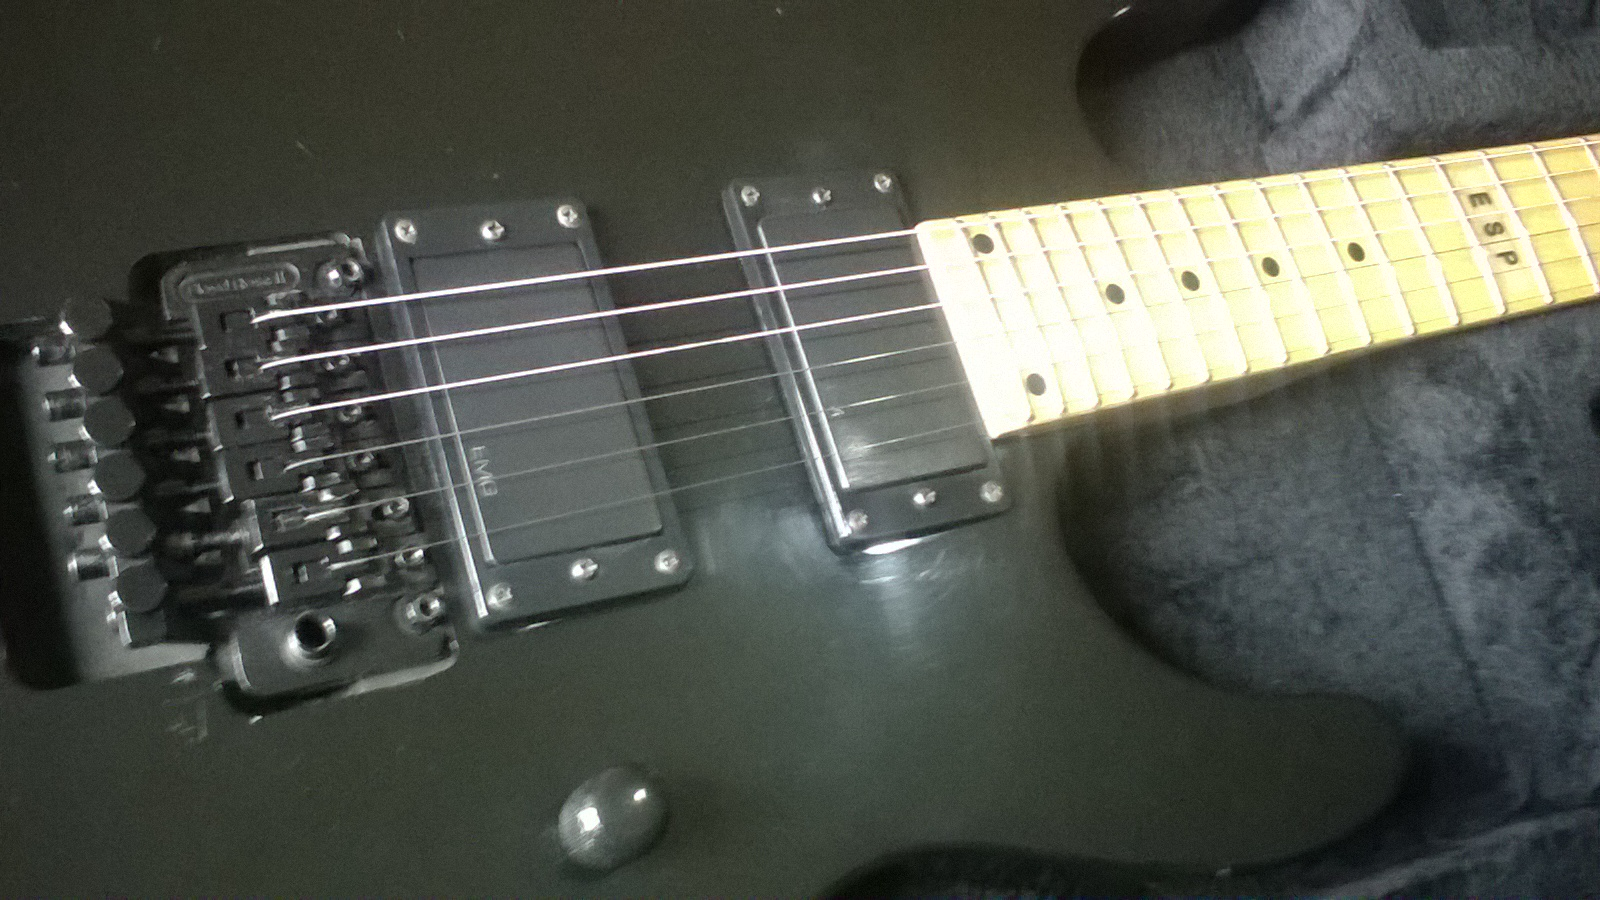 Well, no ESP branded guitar was made in Korea, so that's already a knock  against it.